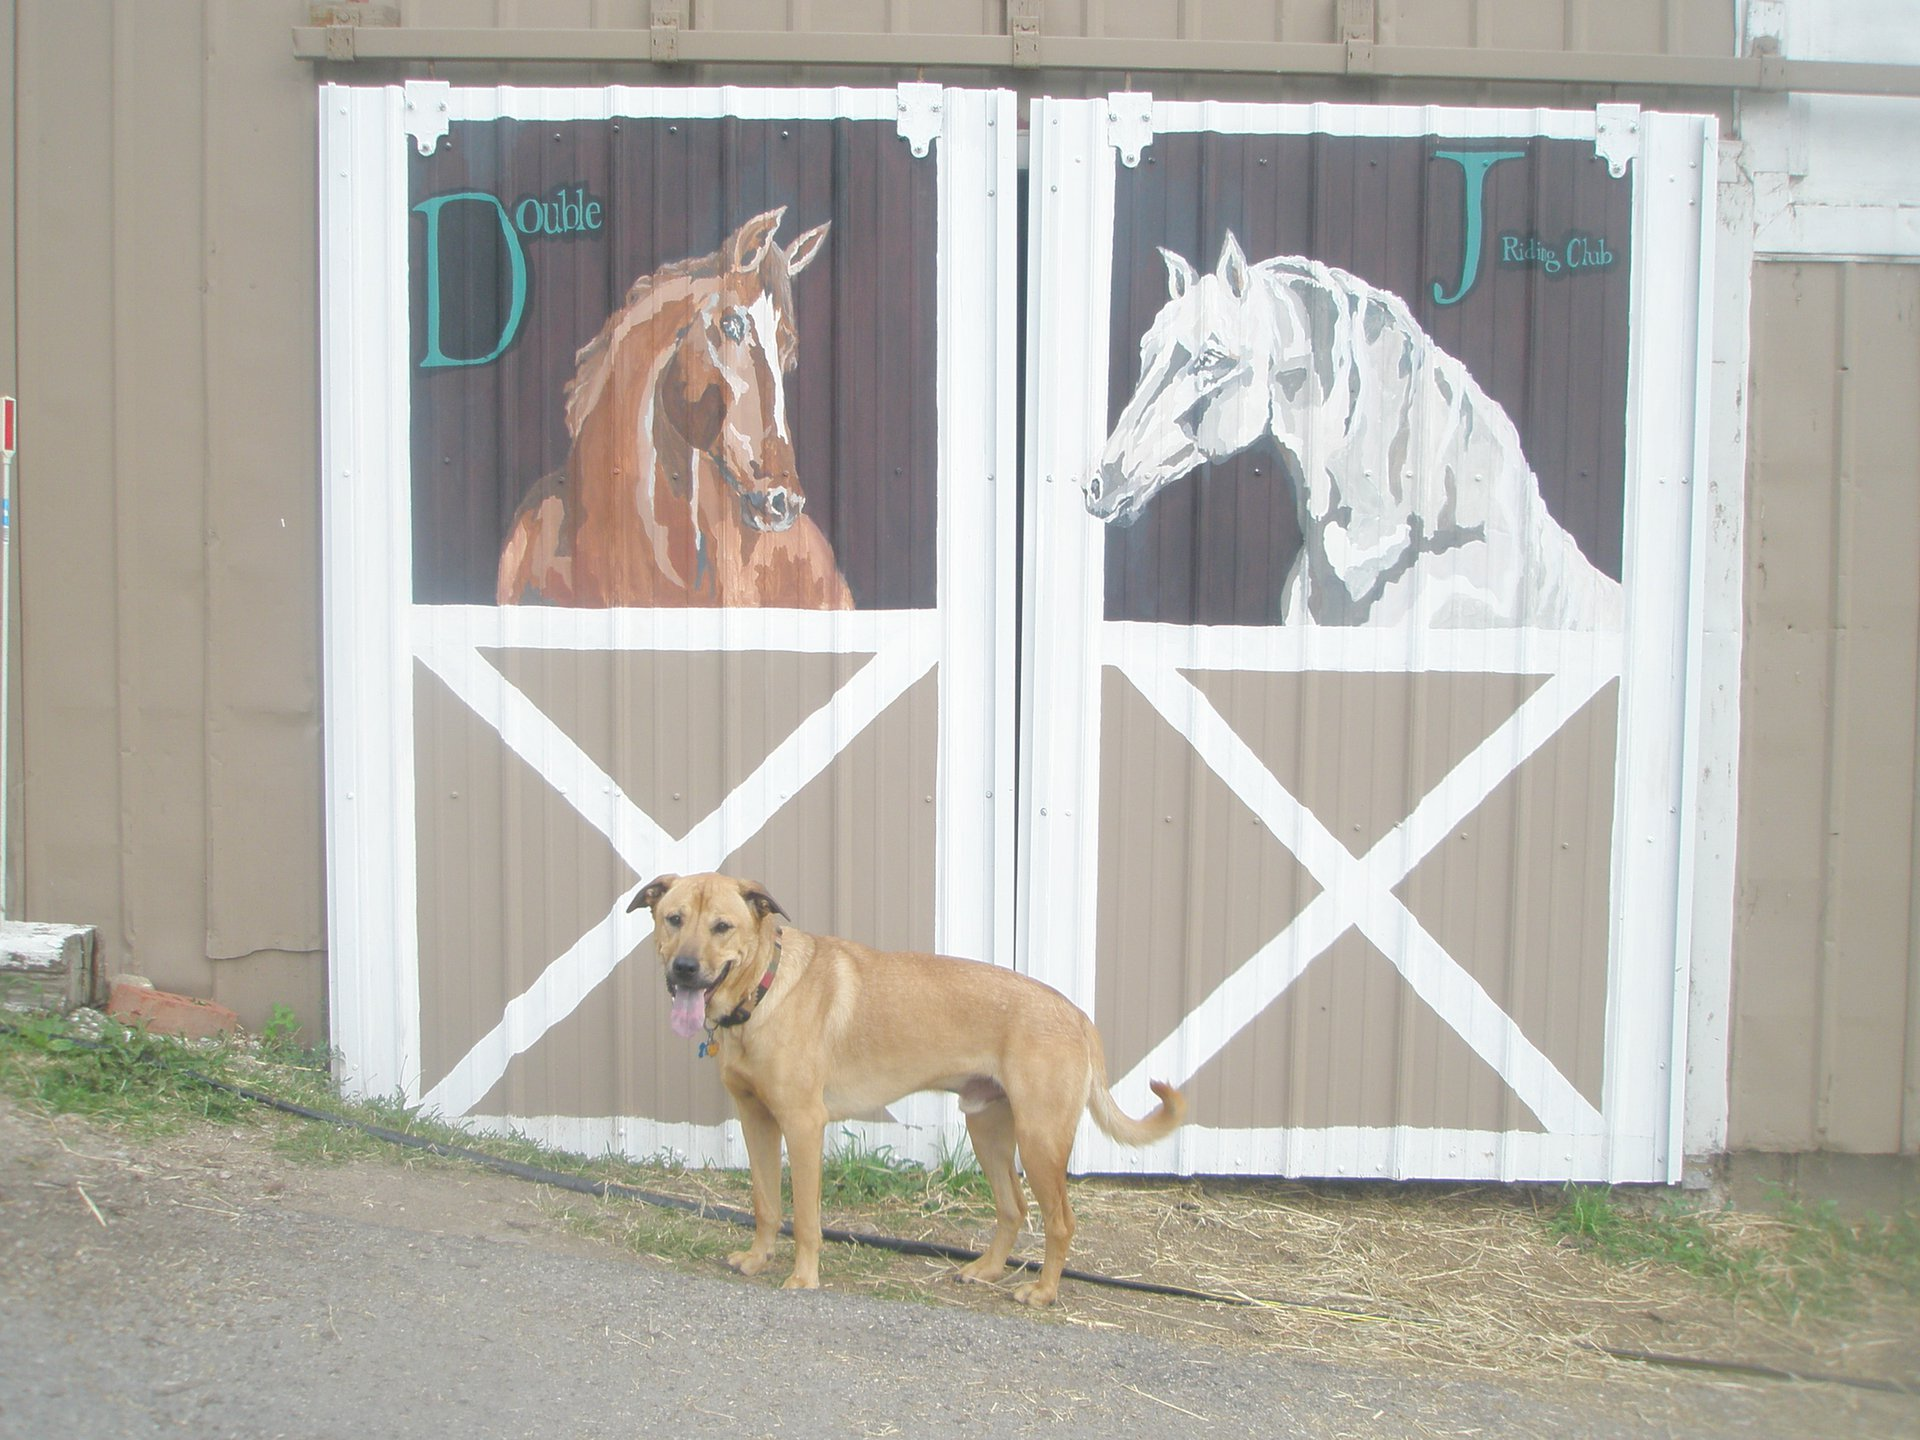 """Double J Riding Club"" mural"